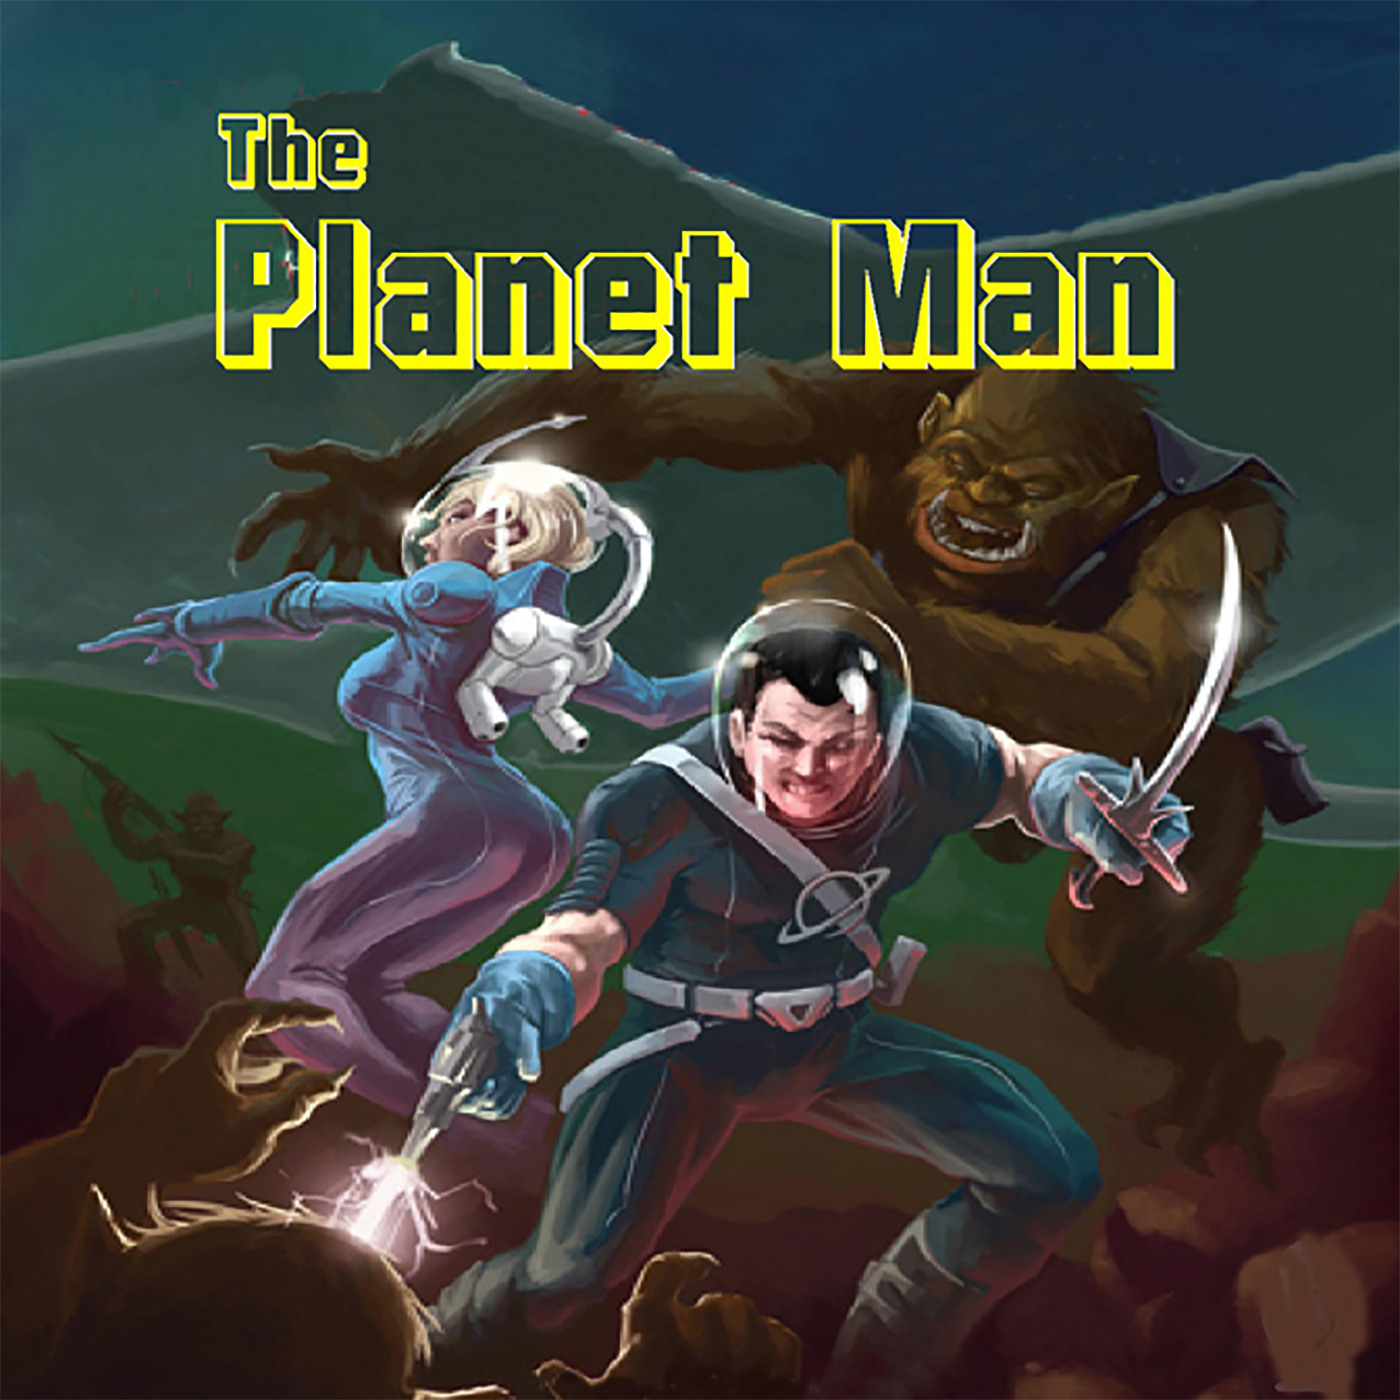 The Planet Man